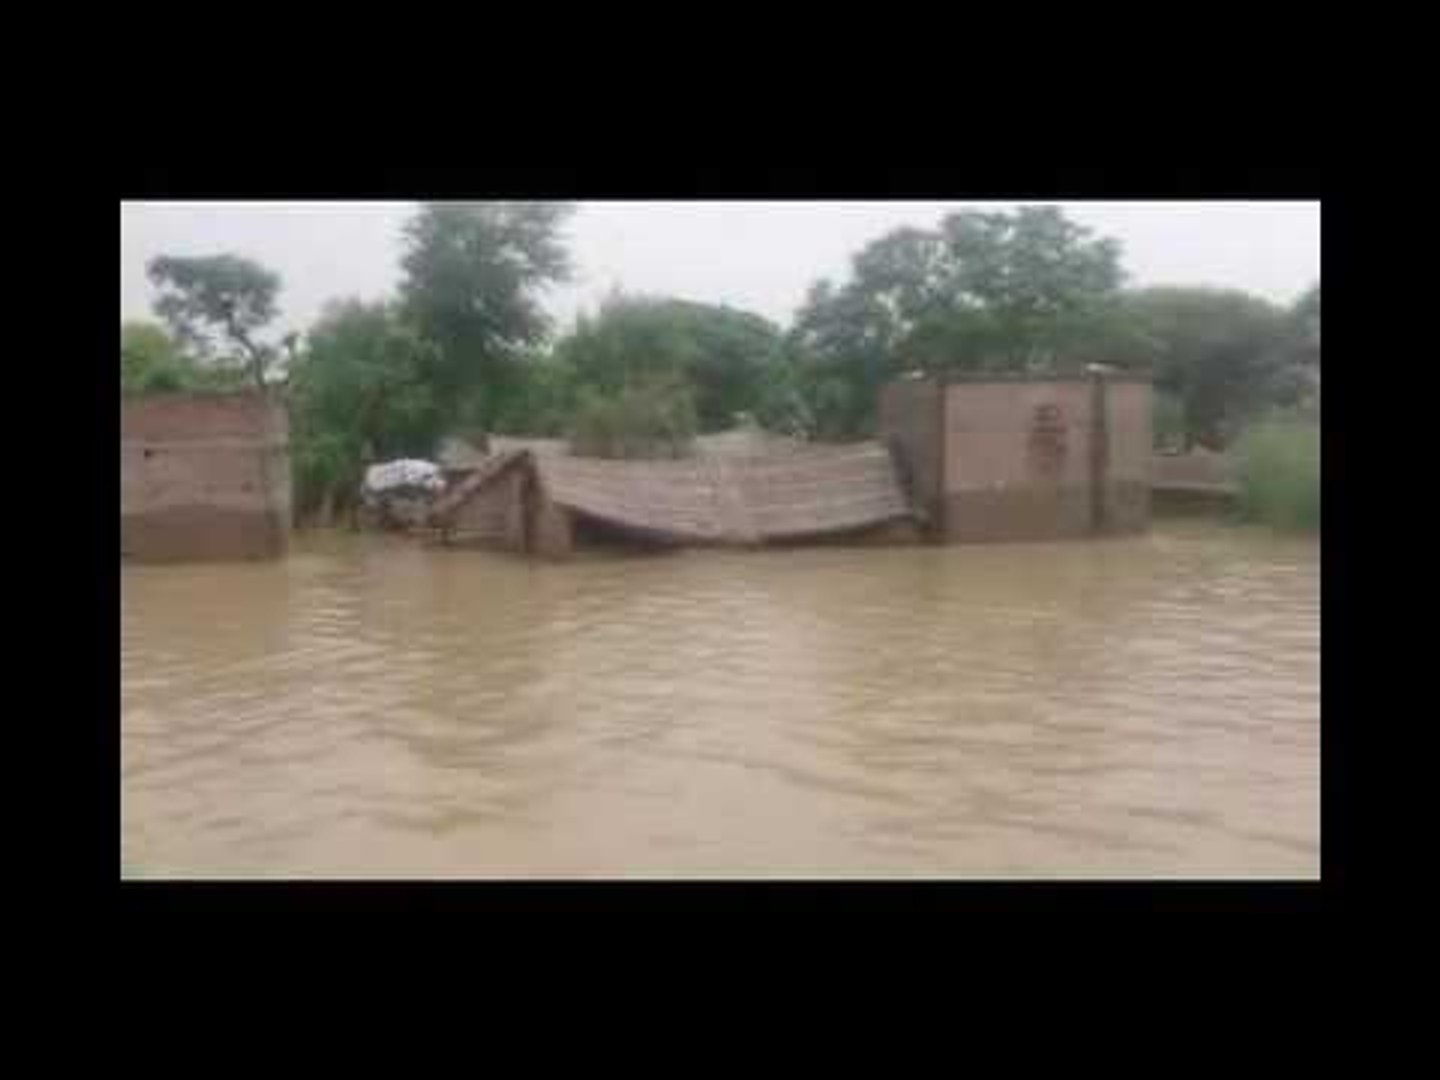 bihar Thousands of people stranded in flood havoc